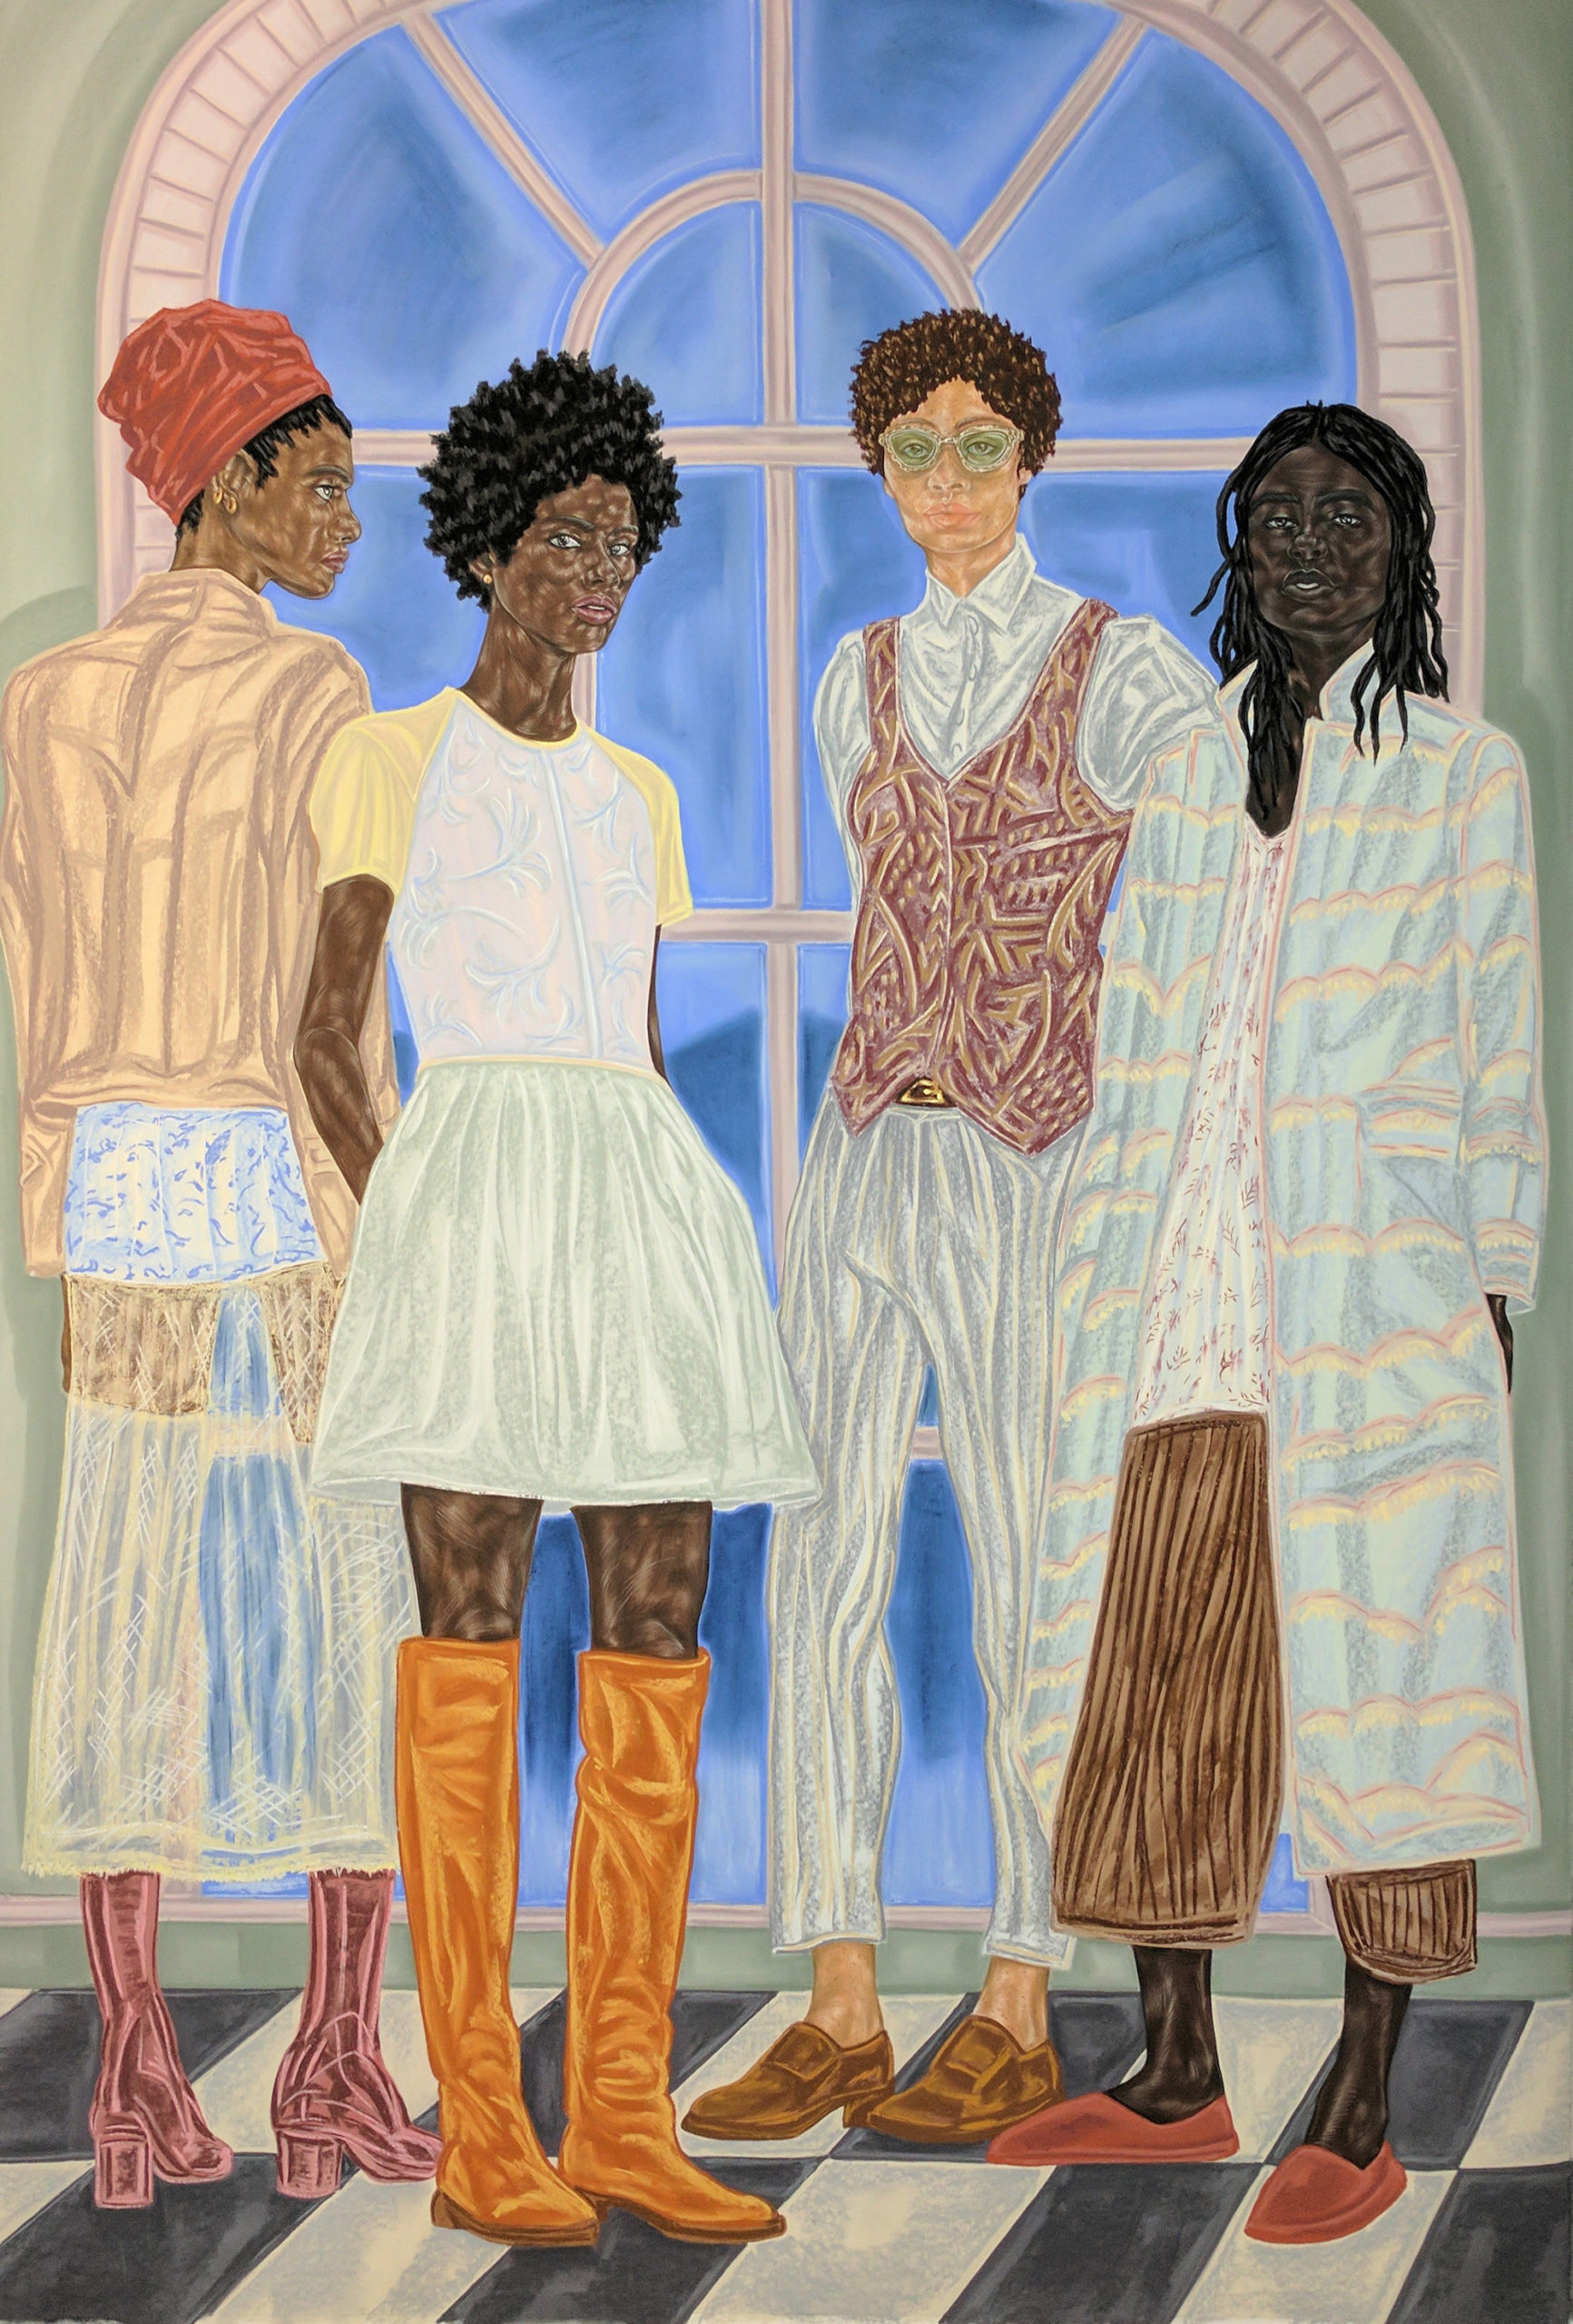 Representatives of State (2016-2017) © Toyin Ojih Odutola. Courtesy of the artist and Jack Shainman Gallery, New York